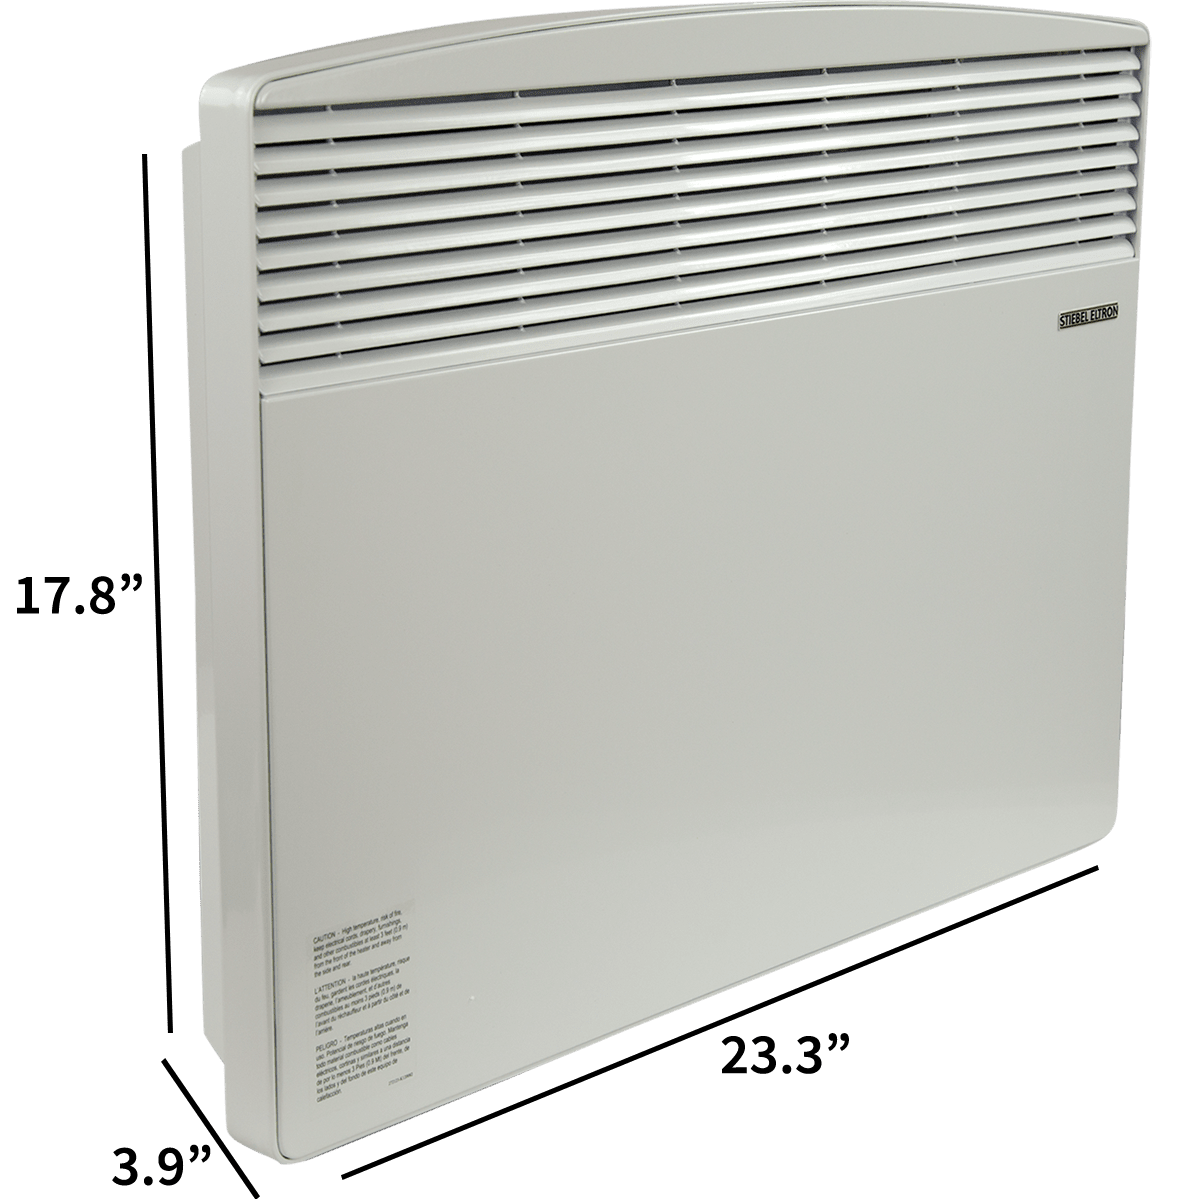 Stiebel Eltron 240V Wall Mounted Convection Heater | Sylvane